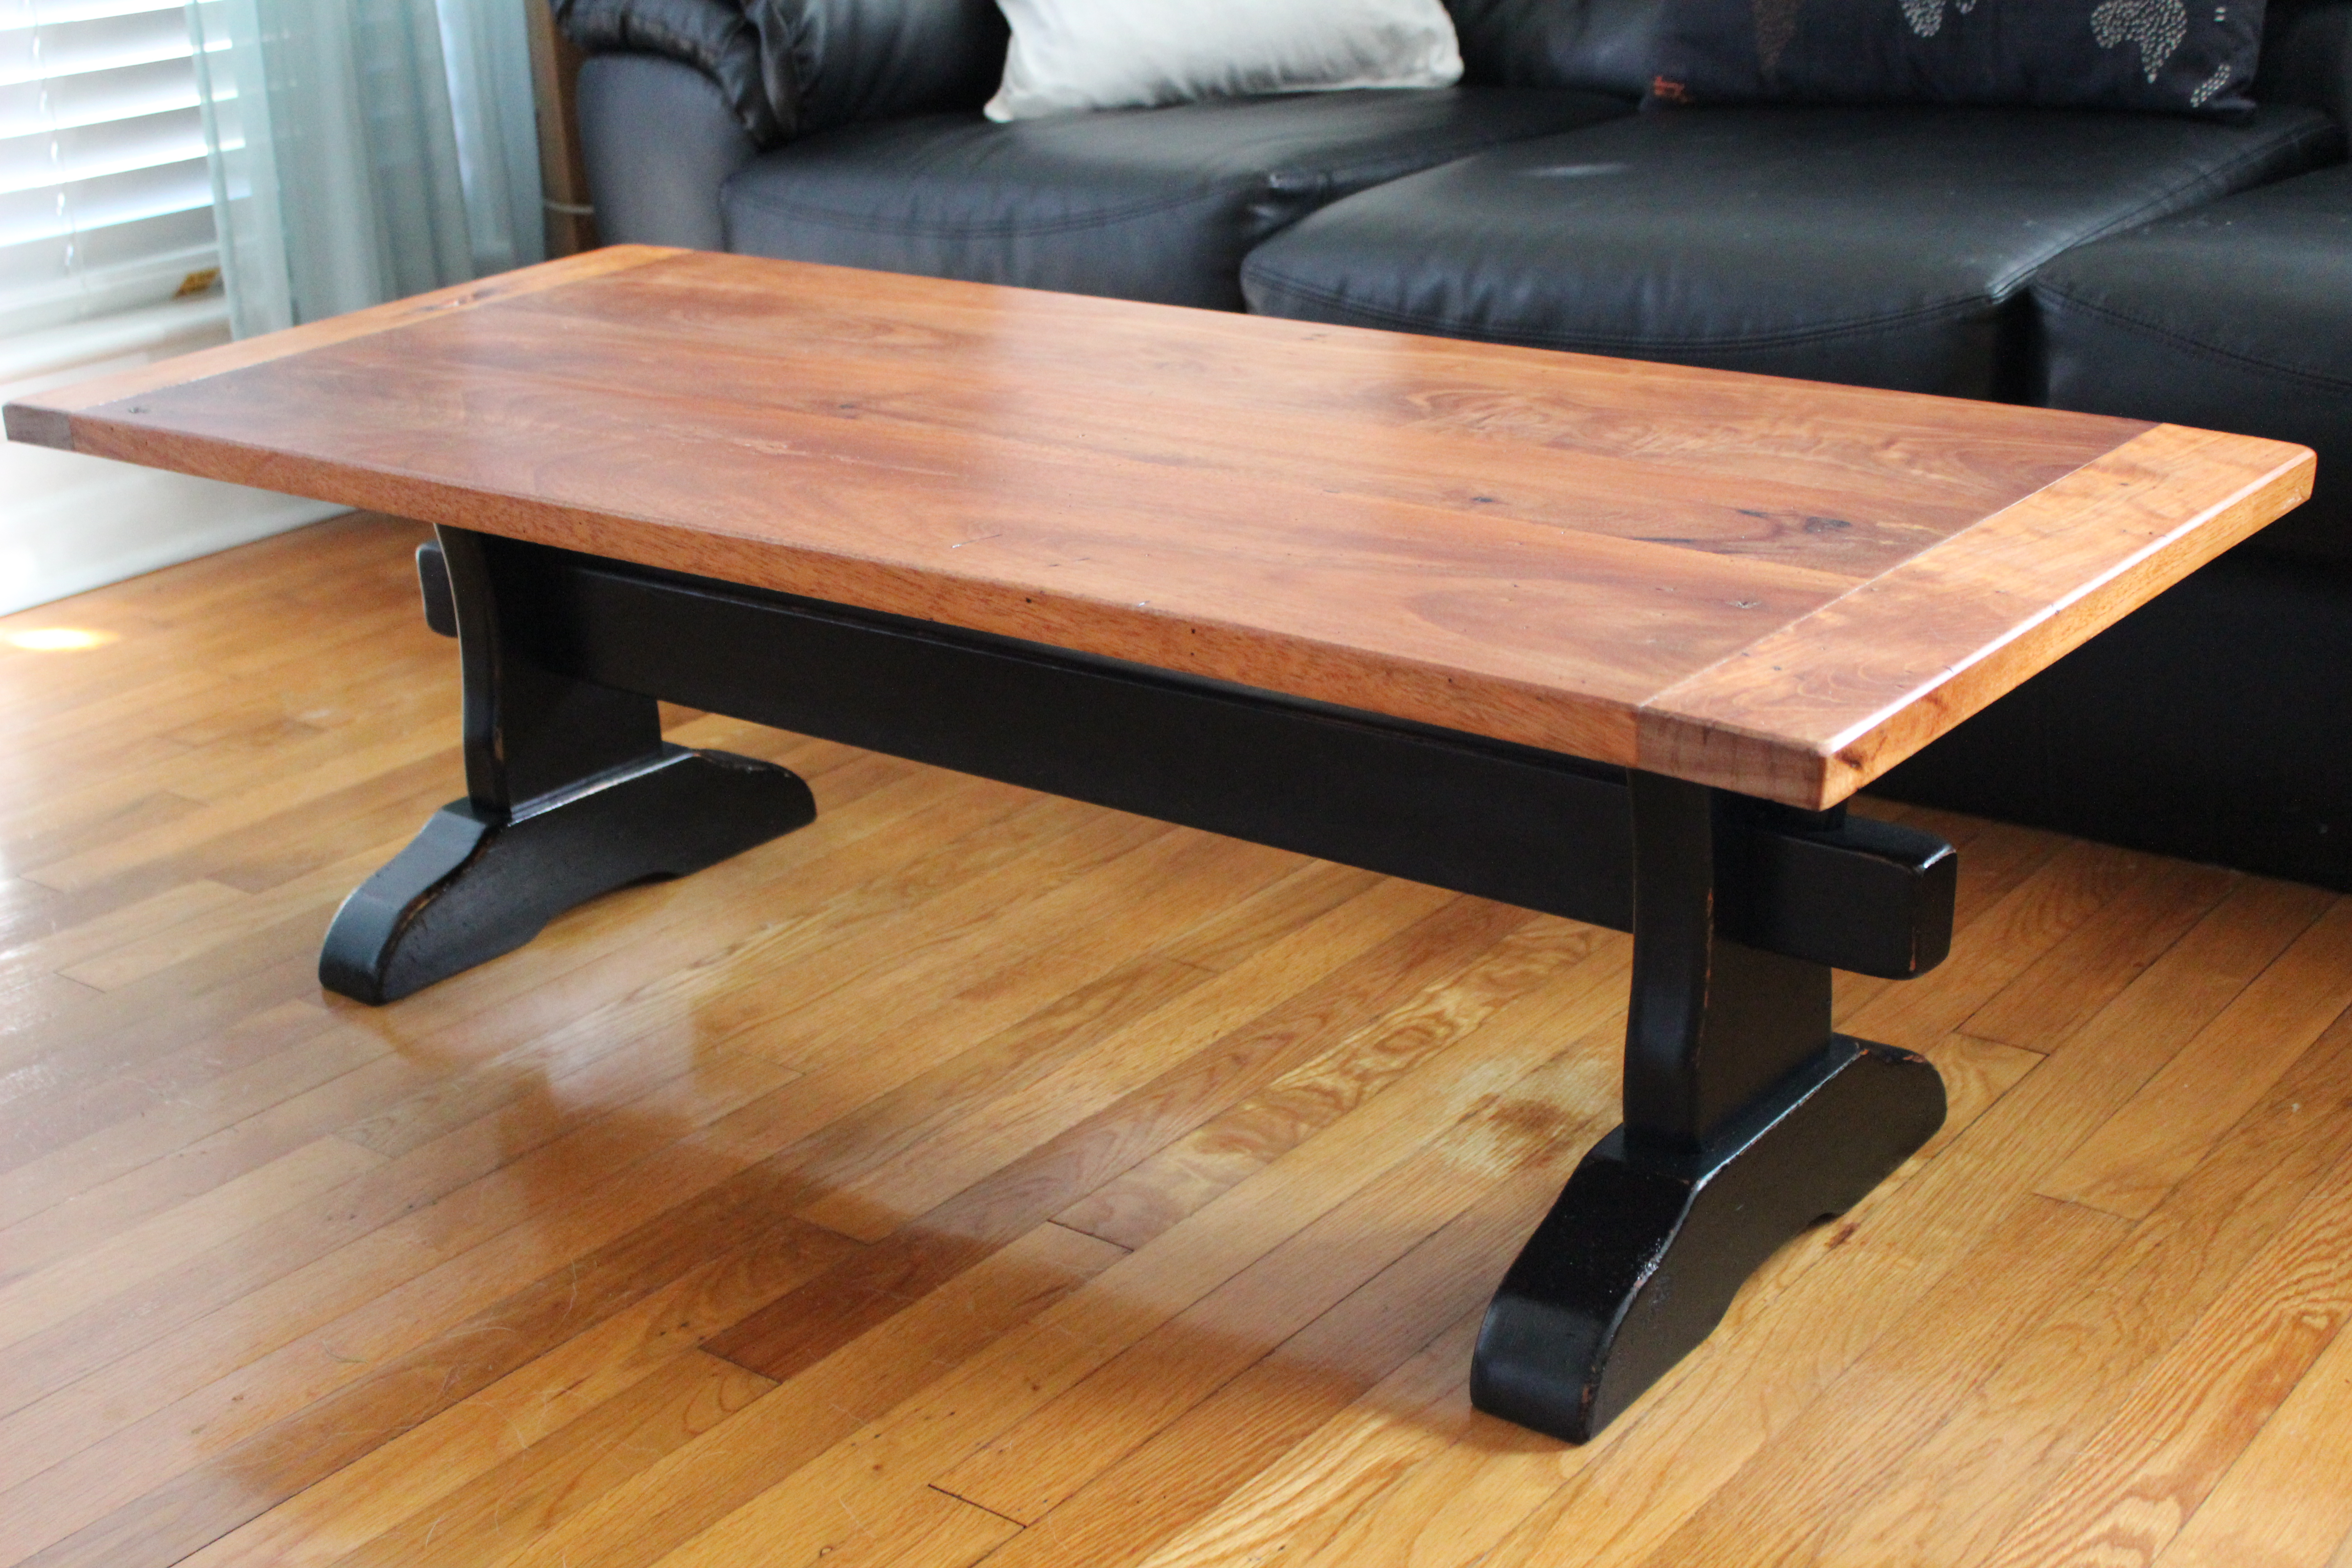 Trestle Table With Mahogany Top - DIY Projects